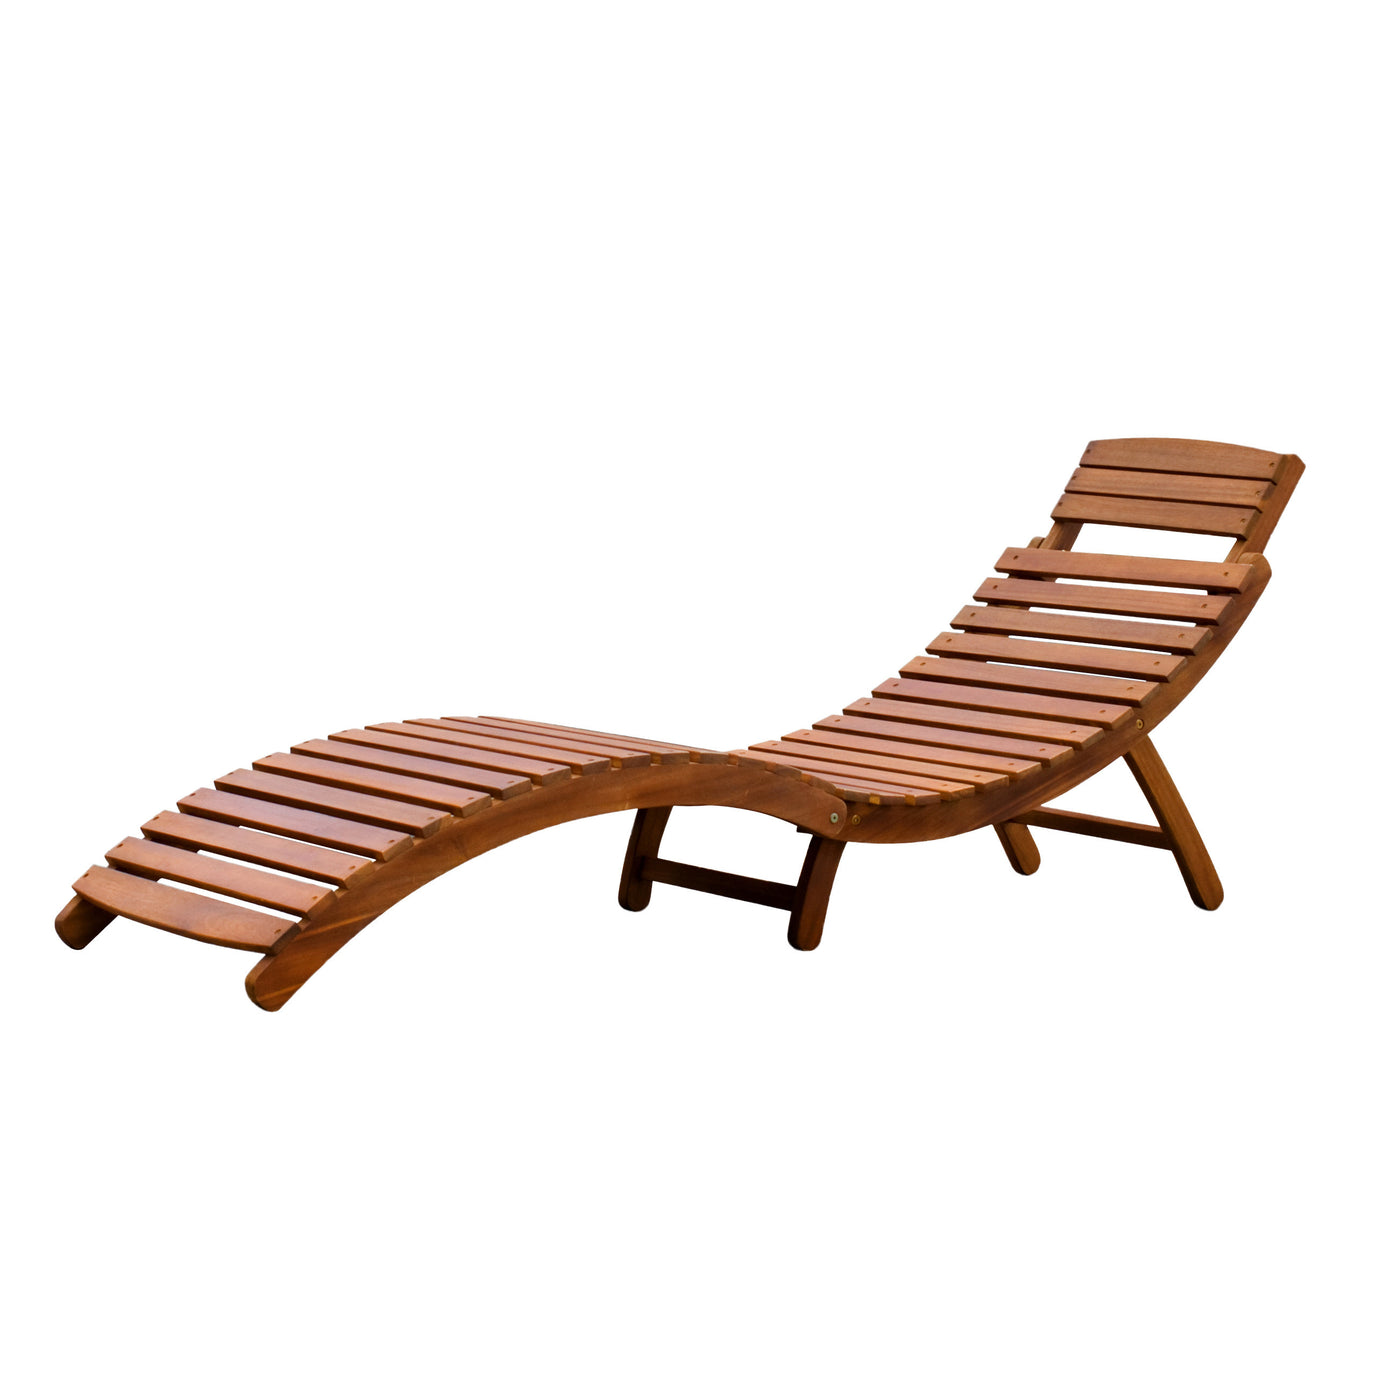 Swimming Pool Side Acacia Hardwood Curved Folding Chaise Lounger